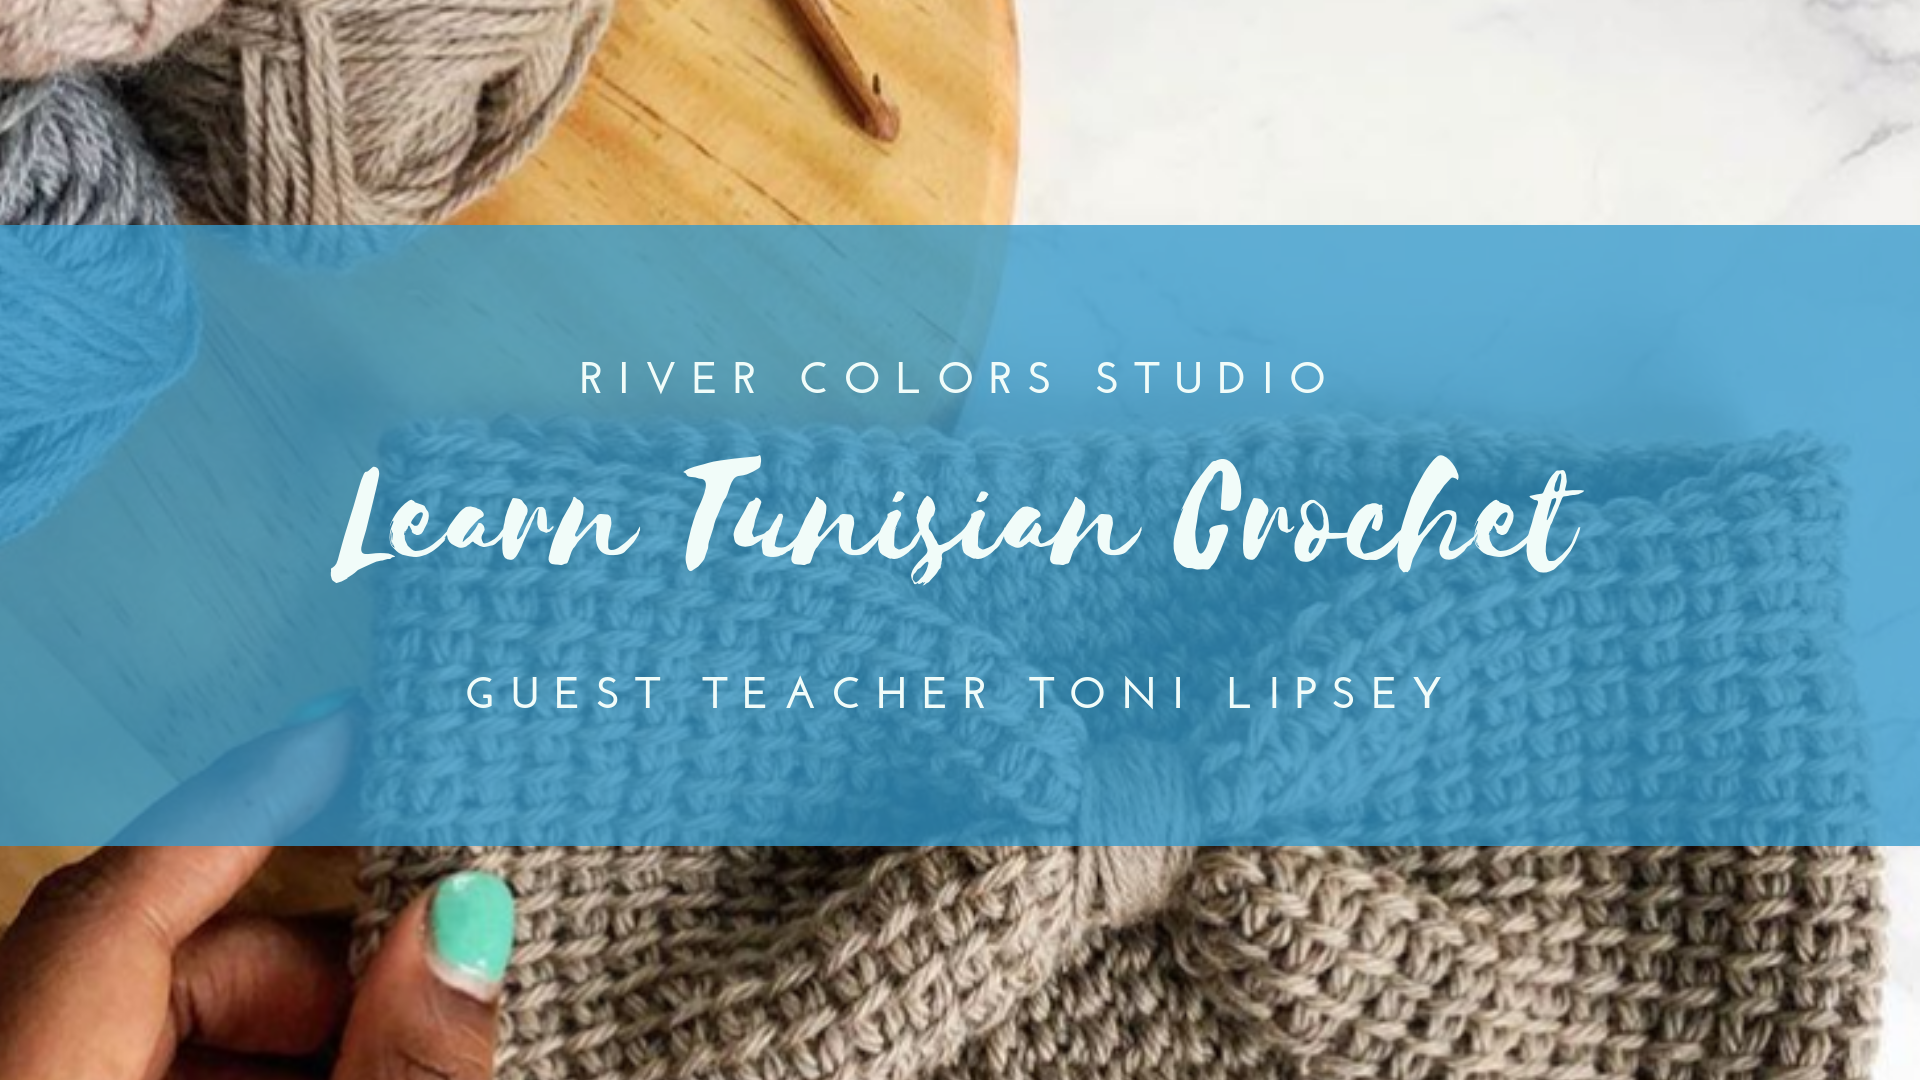 Learn Tunisian Crochet From Toni Lipsey